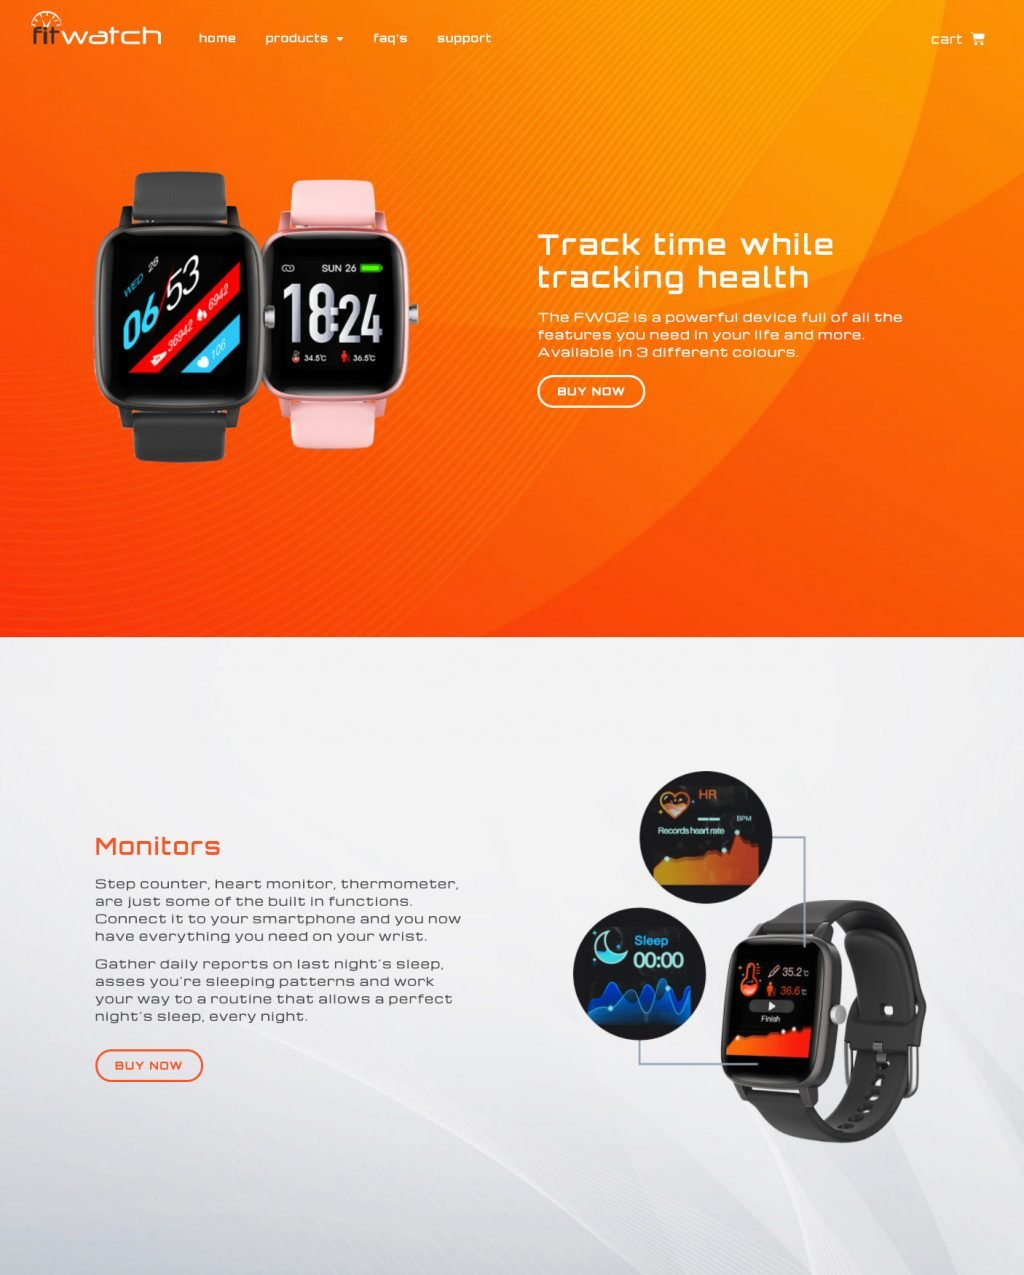 fitwatch-au-fit-watch-smart-02-top